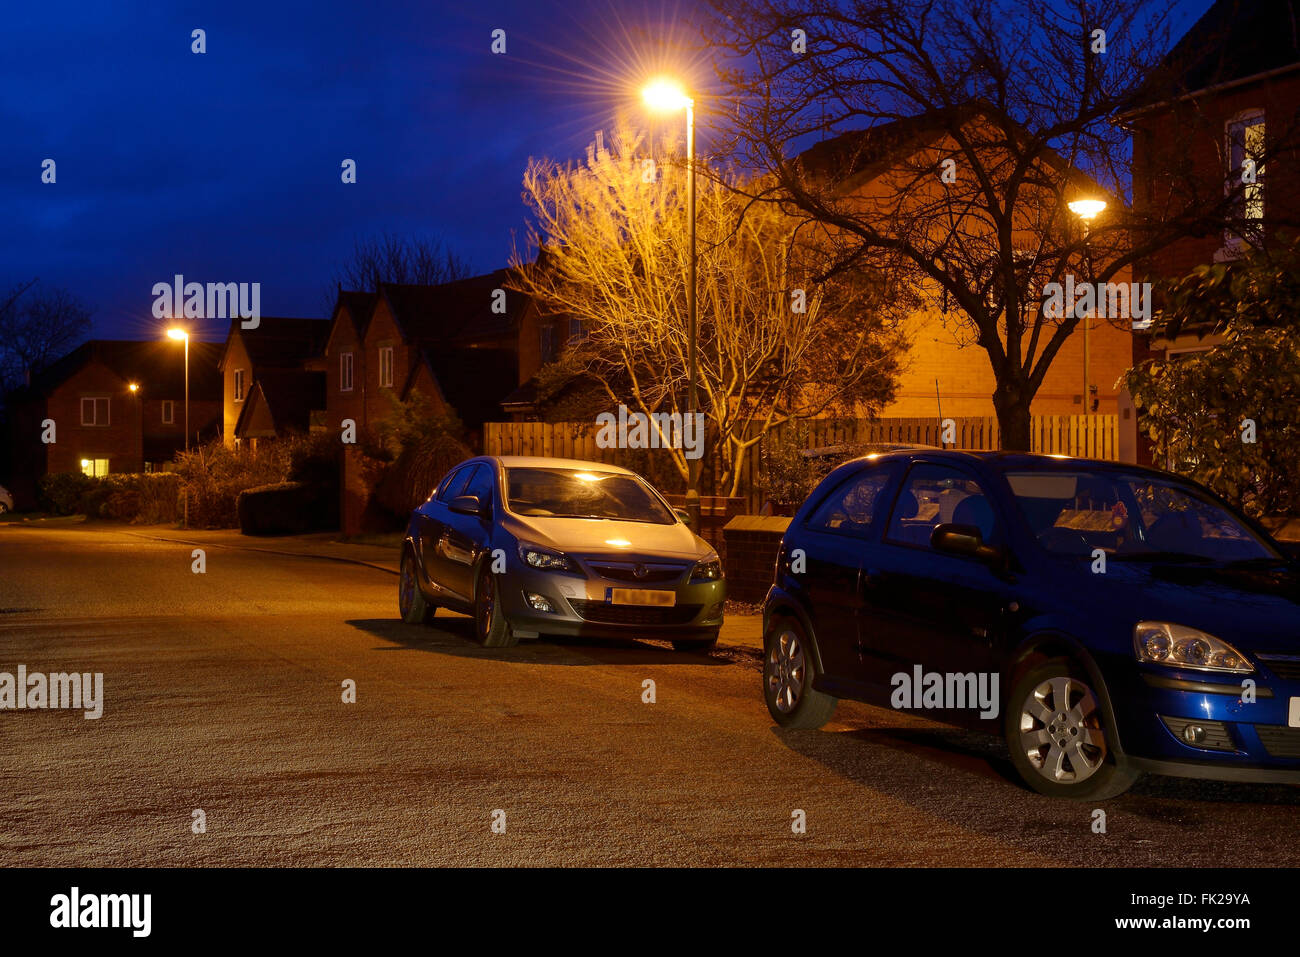 Cars parked on the side of a road at night - Stock Image